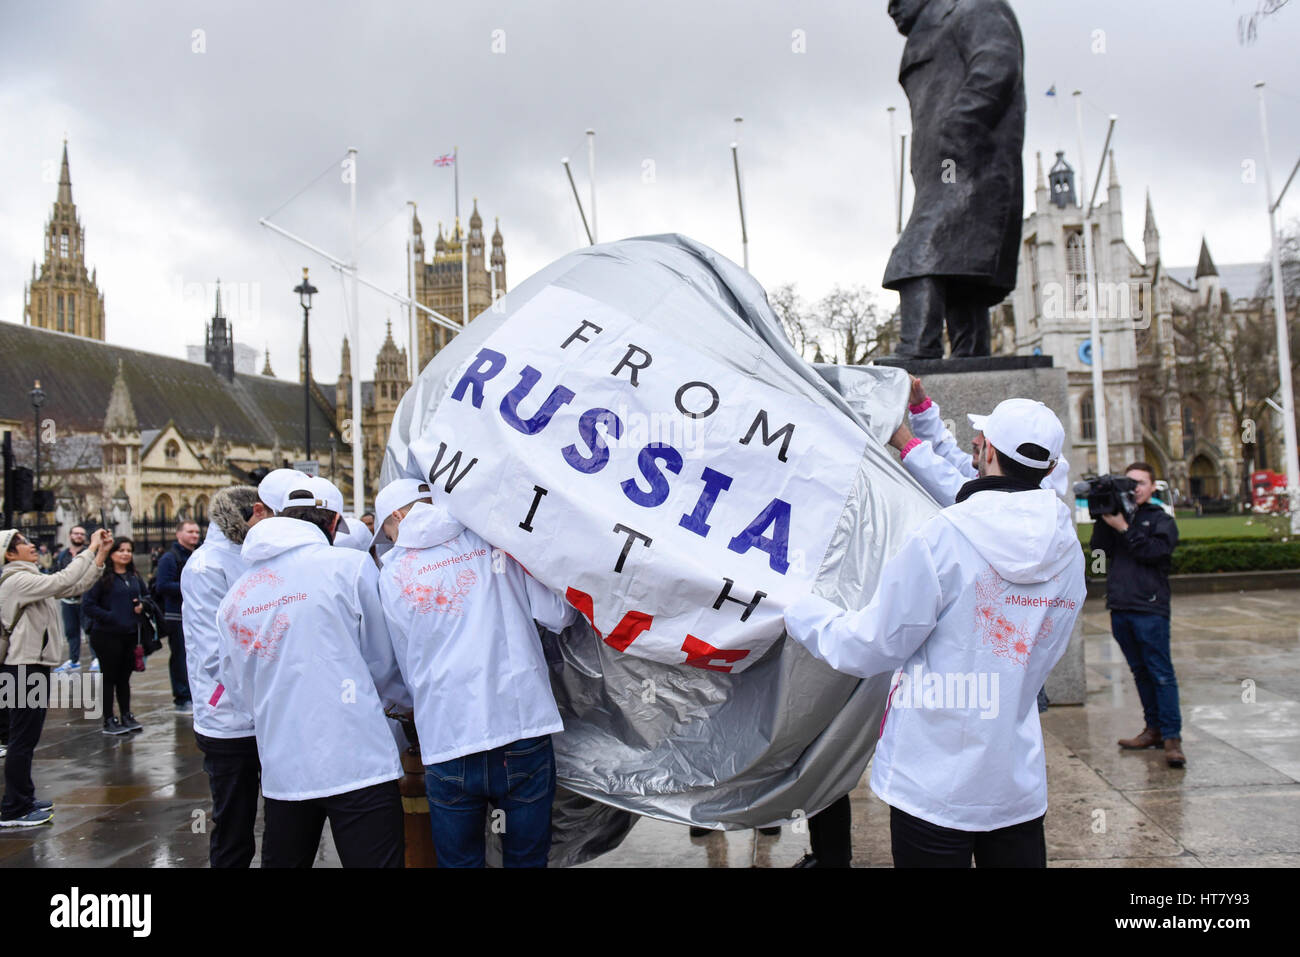 London, UK.  8 March 2017.  A flashmob takes place in Parliament Square as part of International Women's Day. - Stock Image